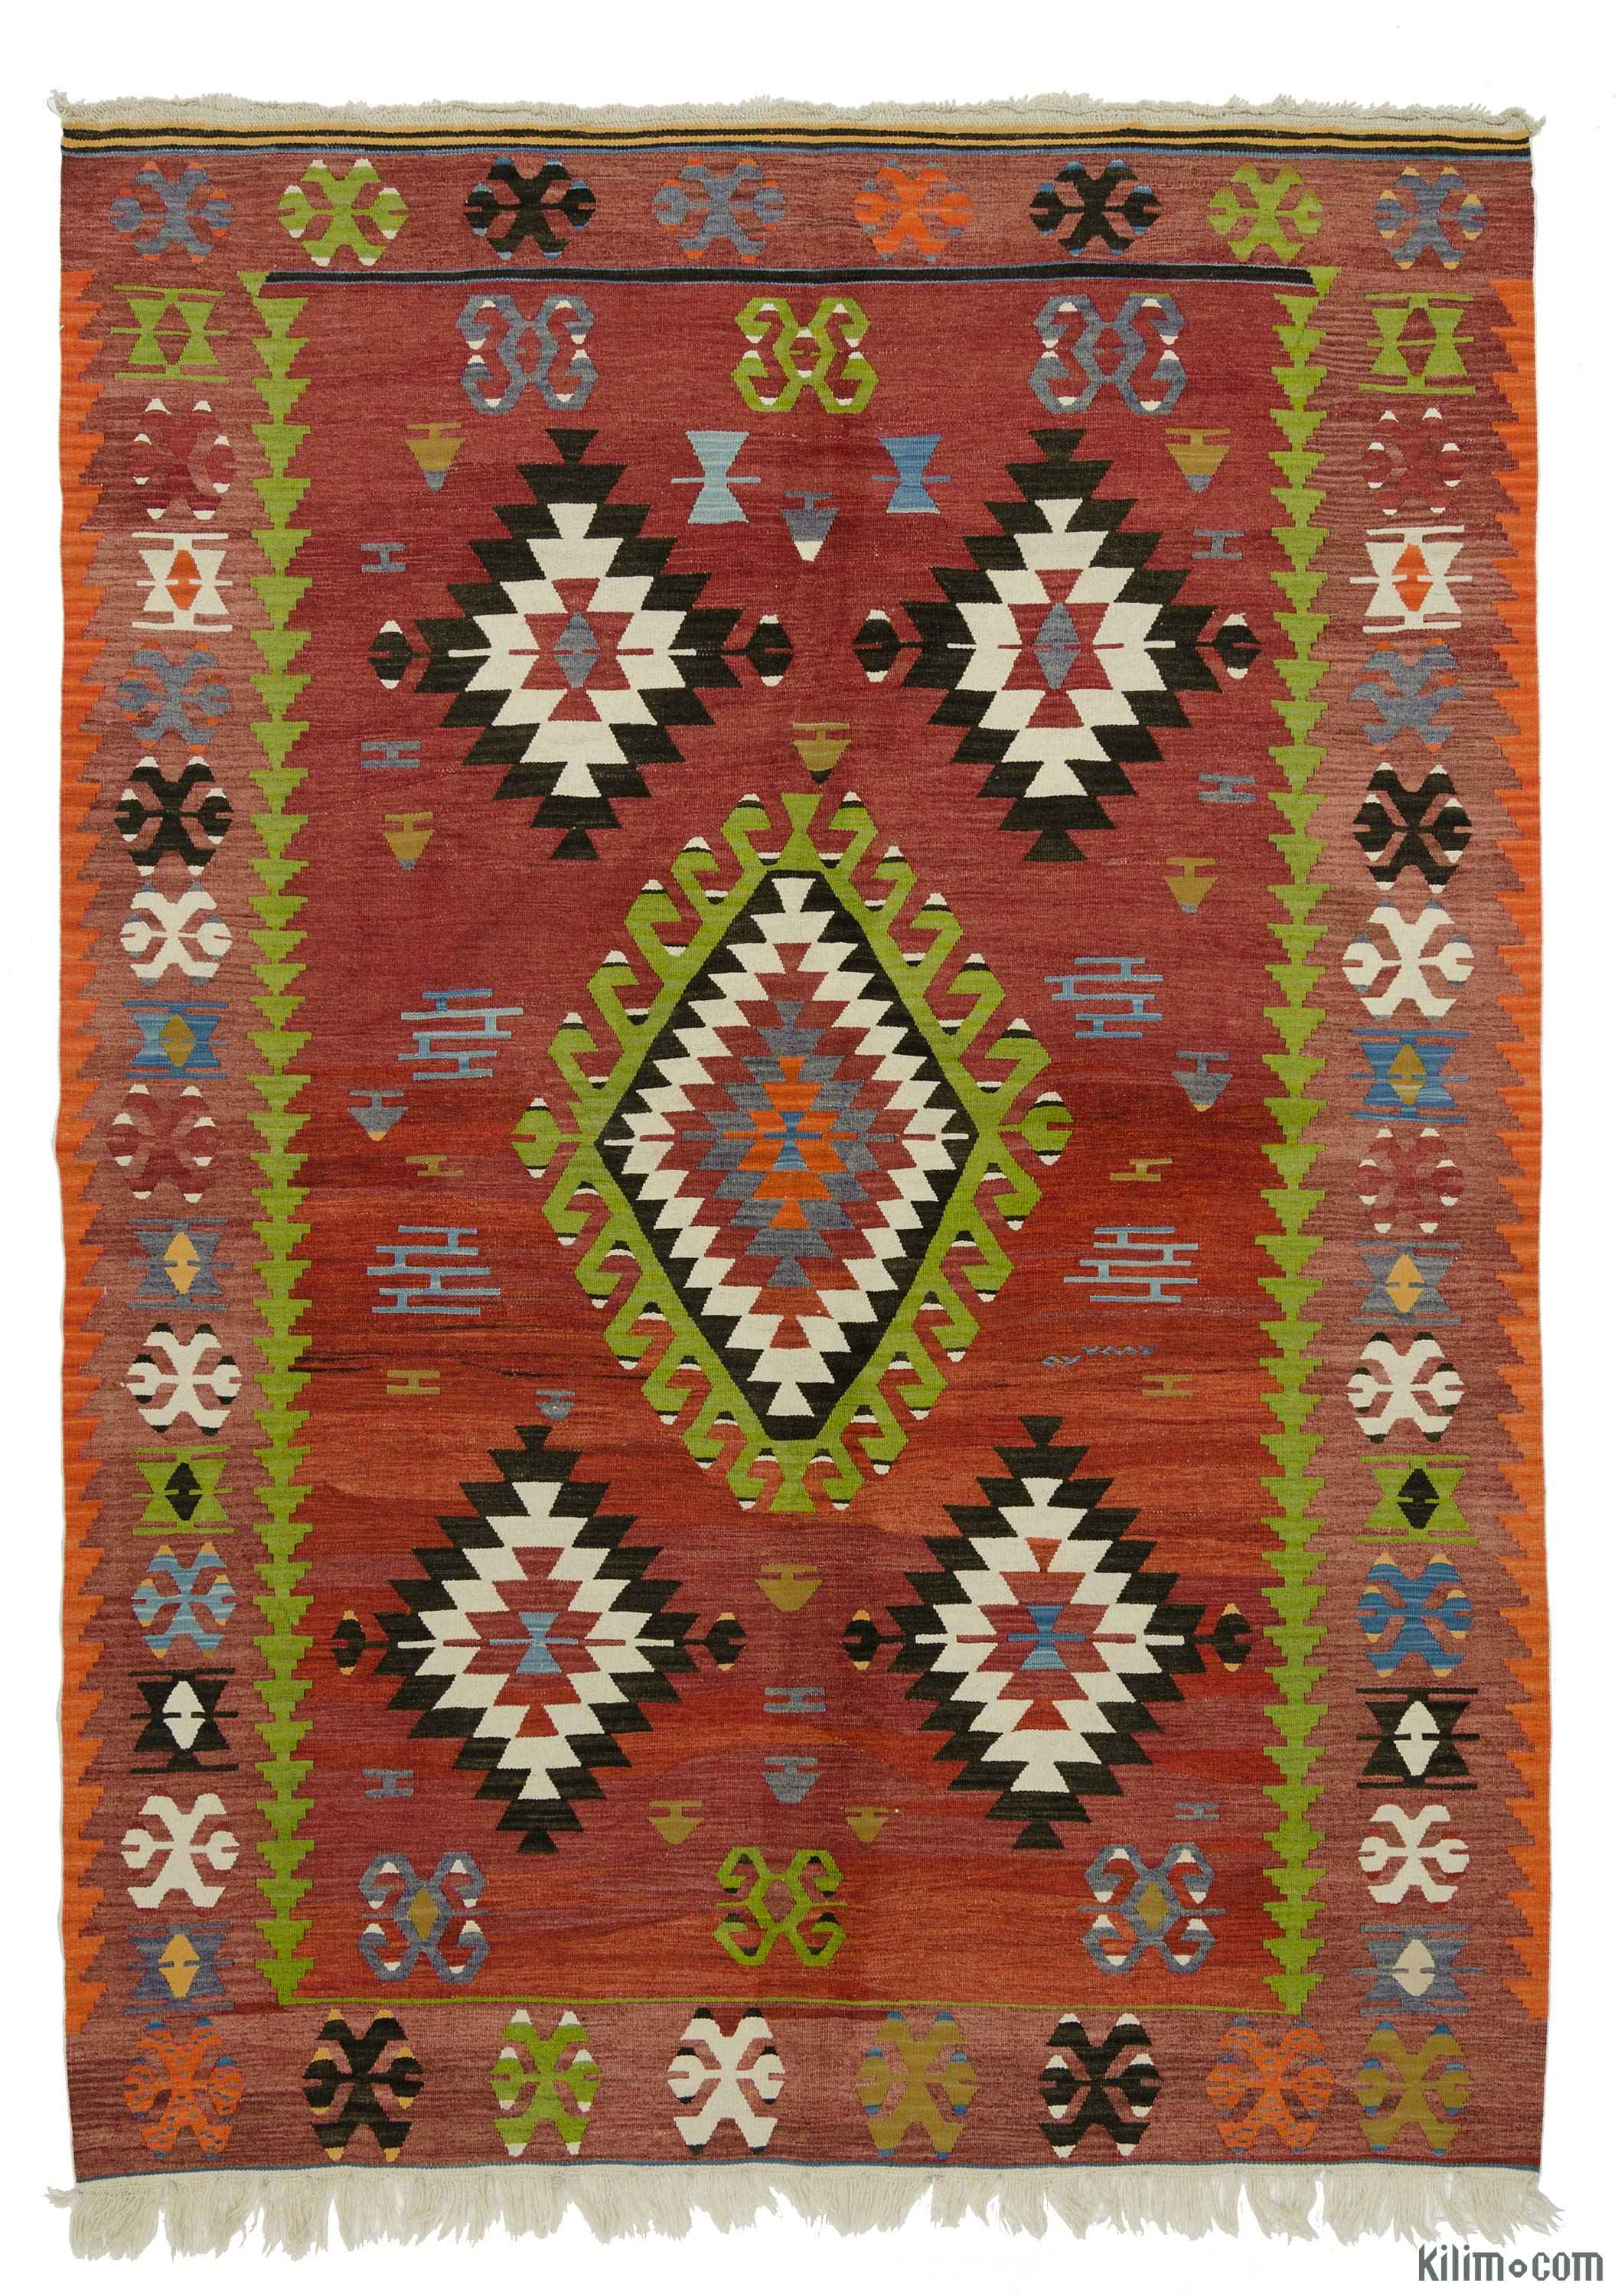 Rugs And Kilims Are The Master Elements Of Bohemian Style: K0016021 Red Vintage Ushak Kilim Rug